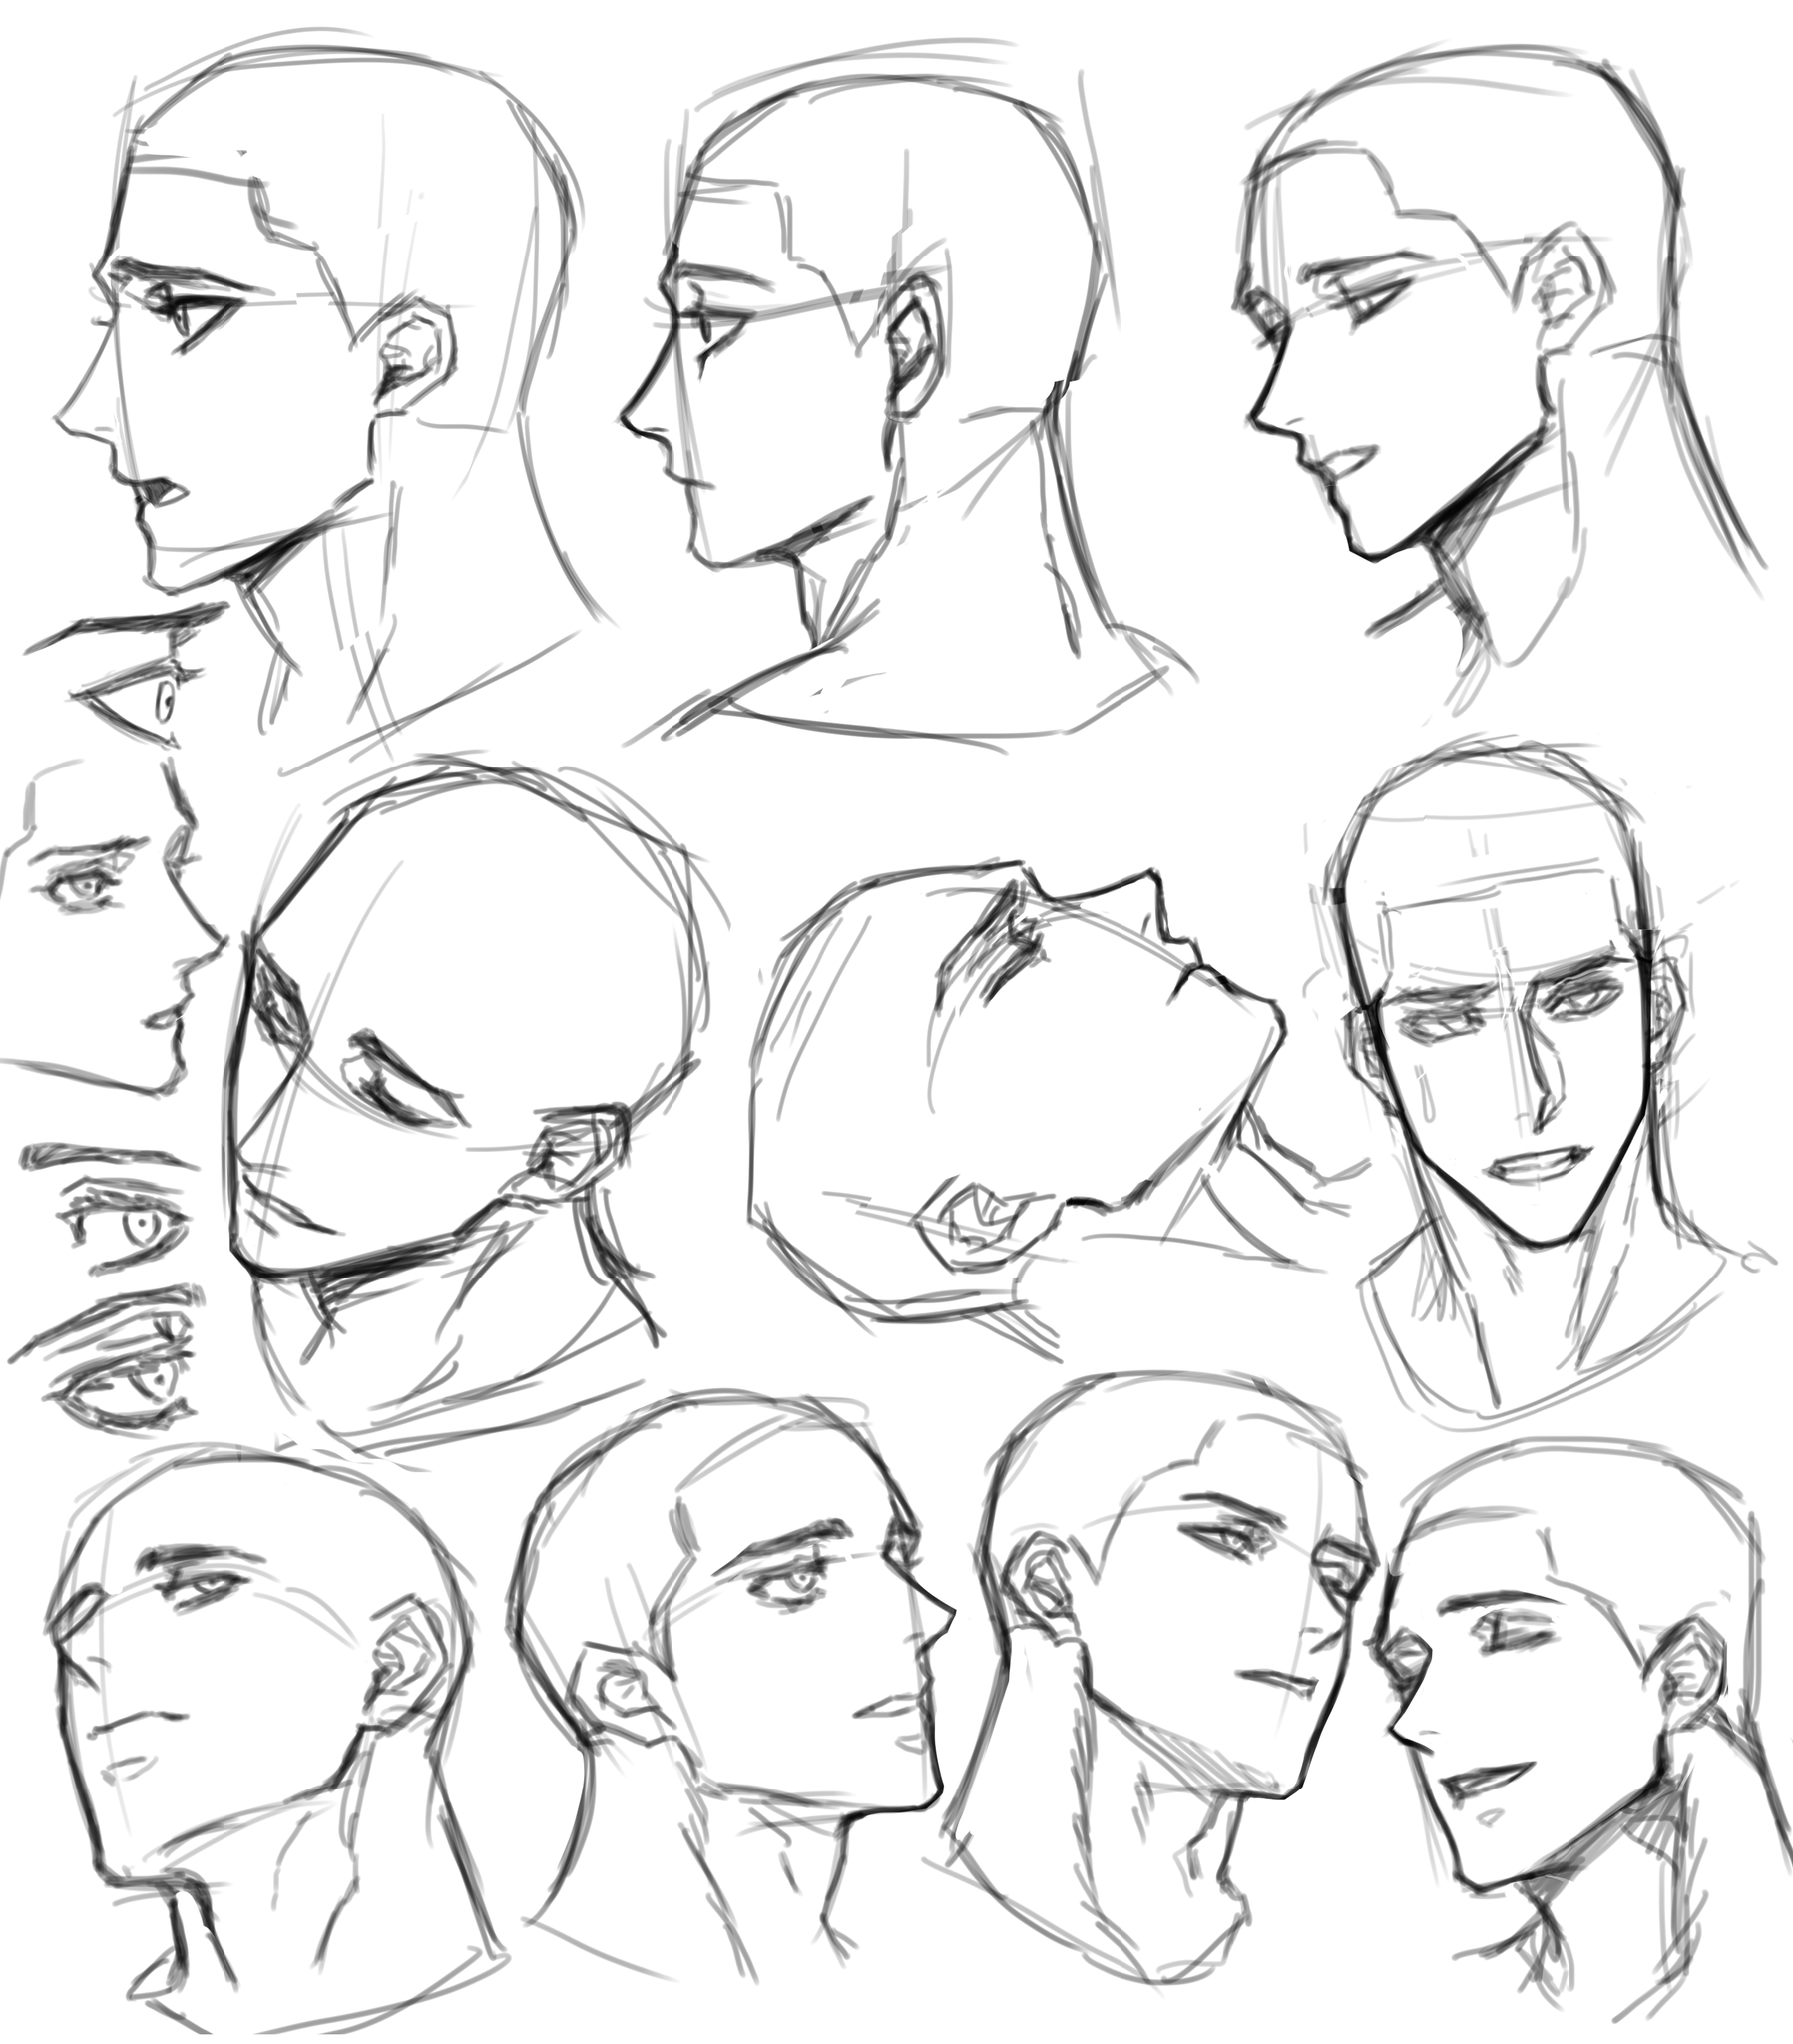 Pin By Camille Yu On M Drawing Expressions In 2020 Face Drawing Reference Male Face Drawing Anime Poses Reference